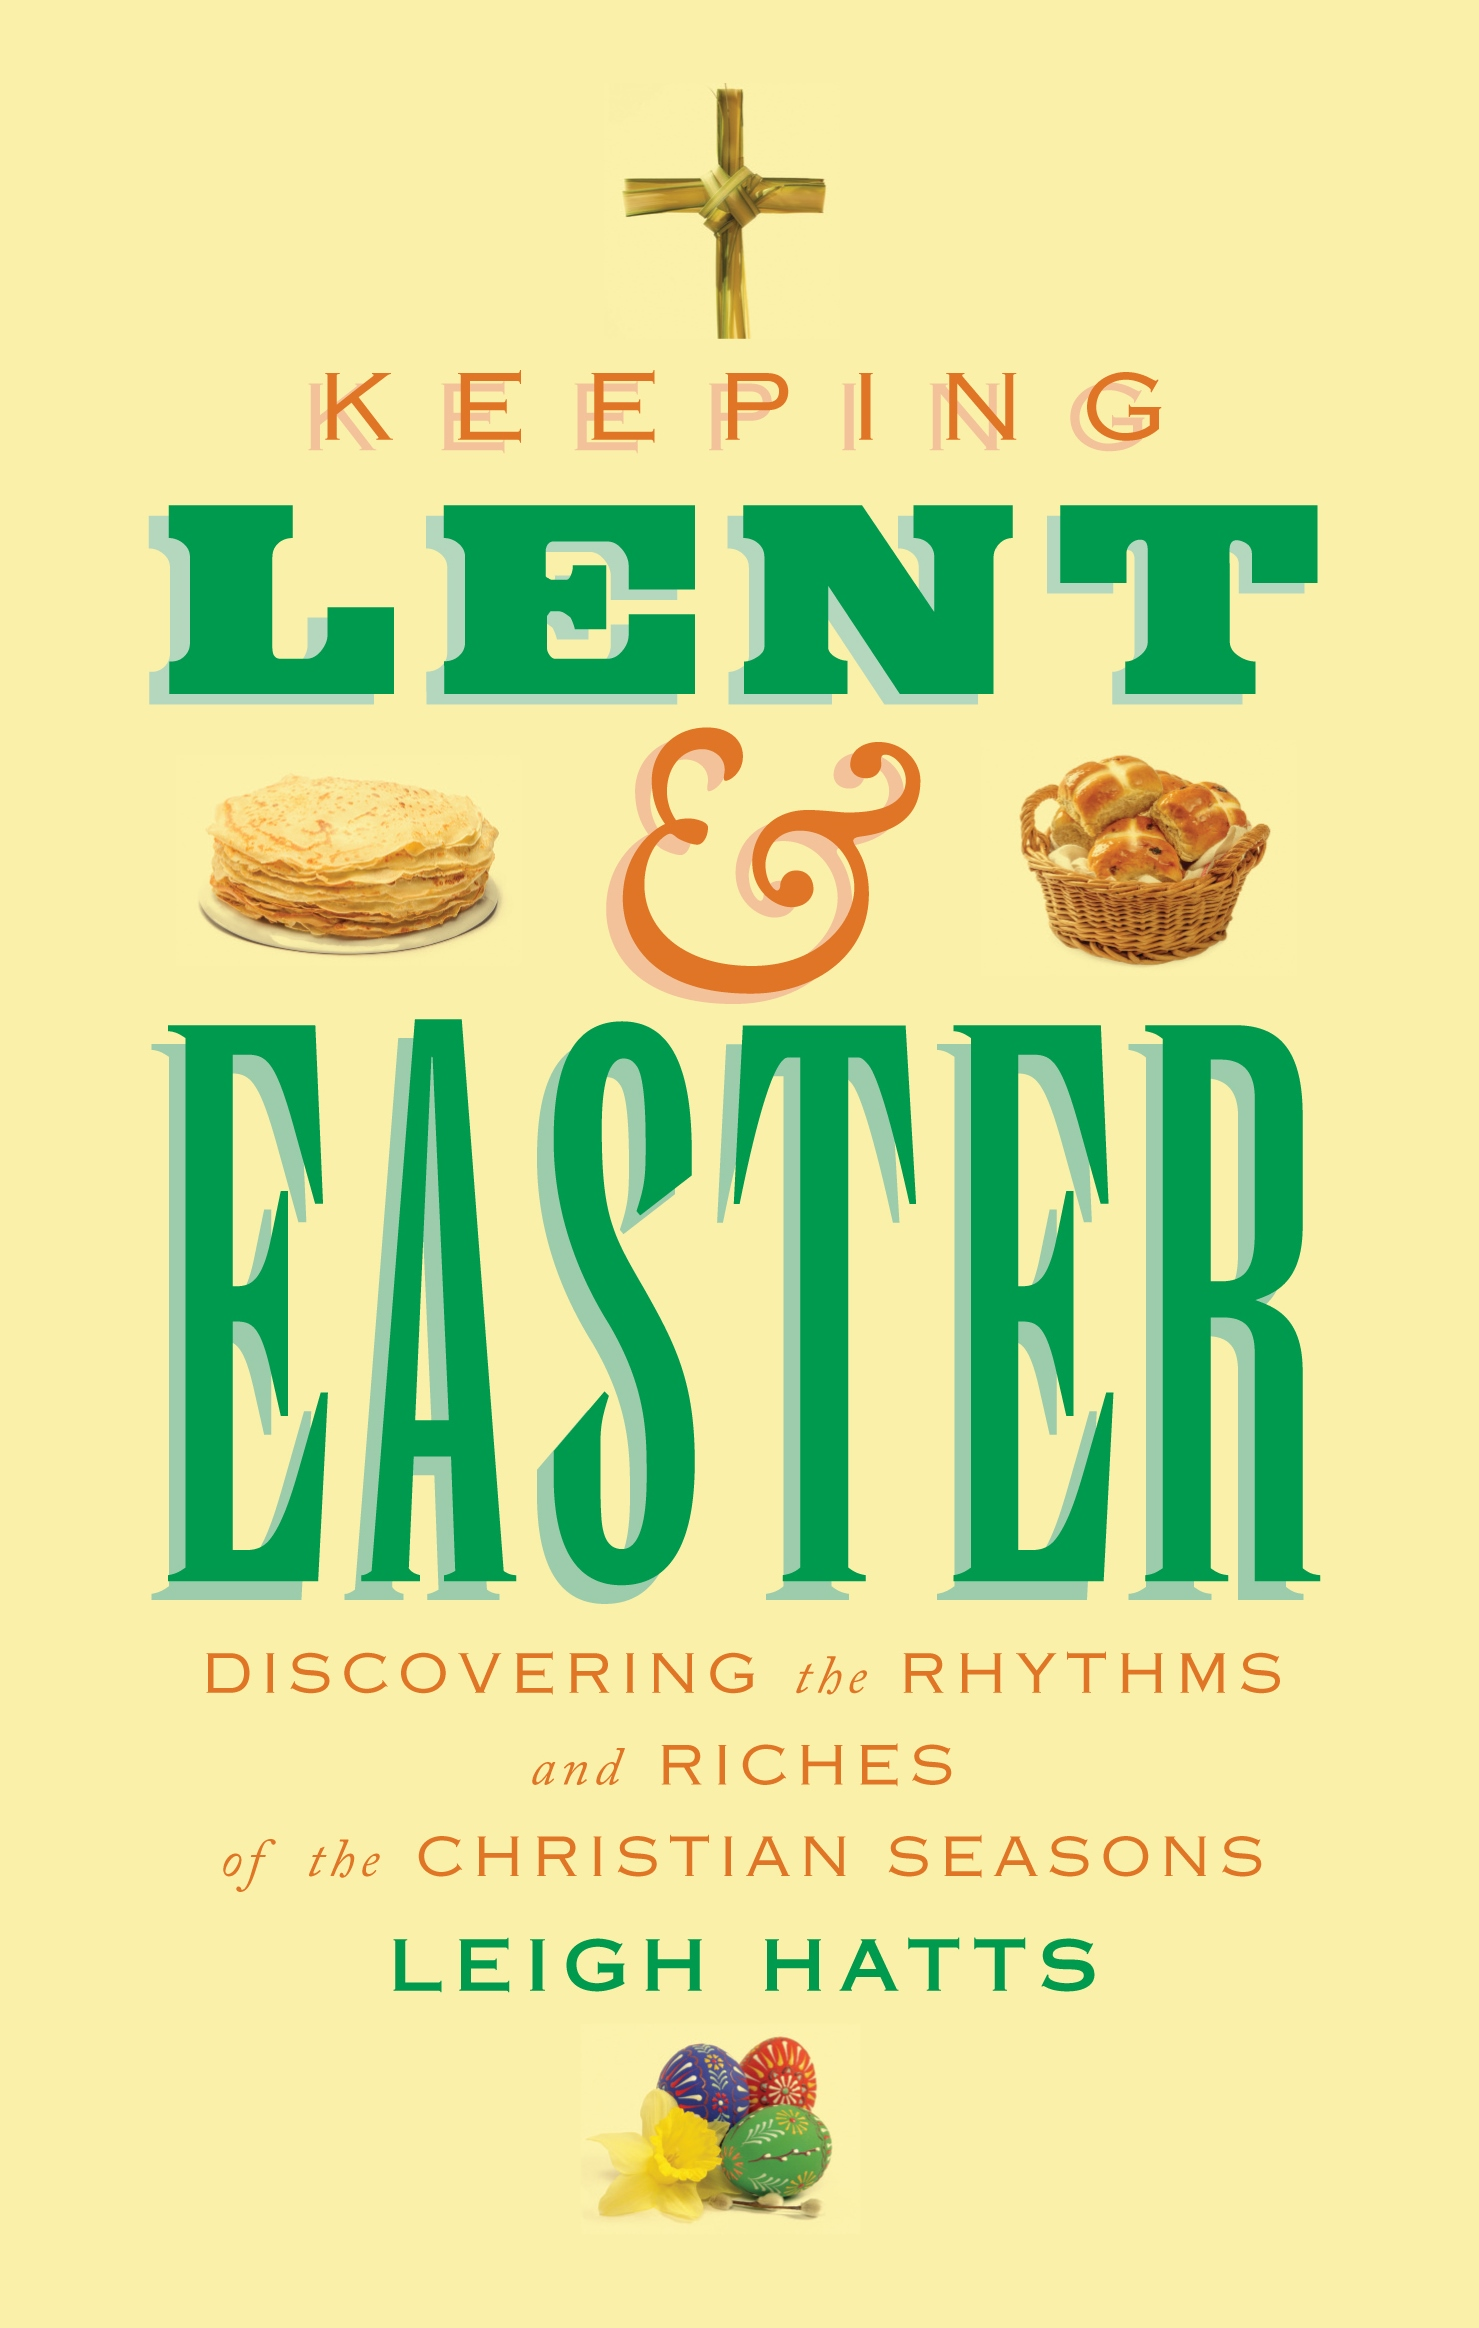 Keeping Lent and Easter